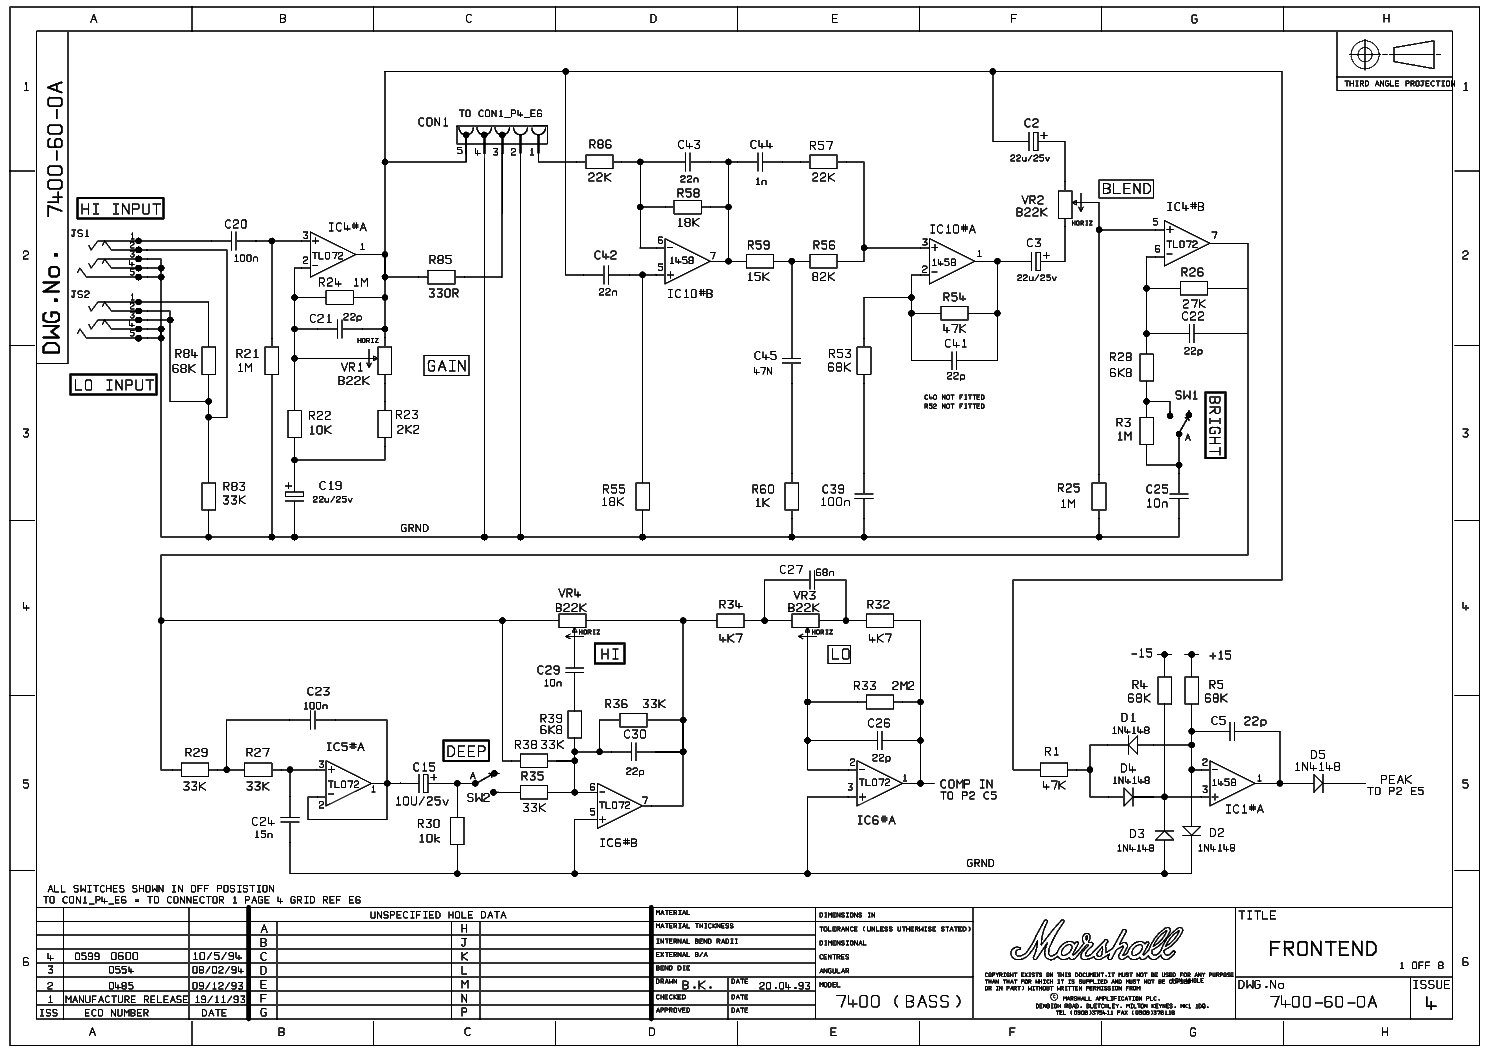 Marshall dbs 7400 schematic wire center marshall dbs 7400 schematic publicscrutiny Choice Image